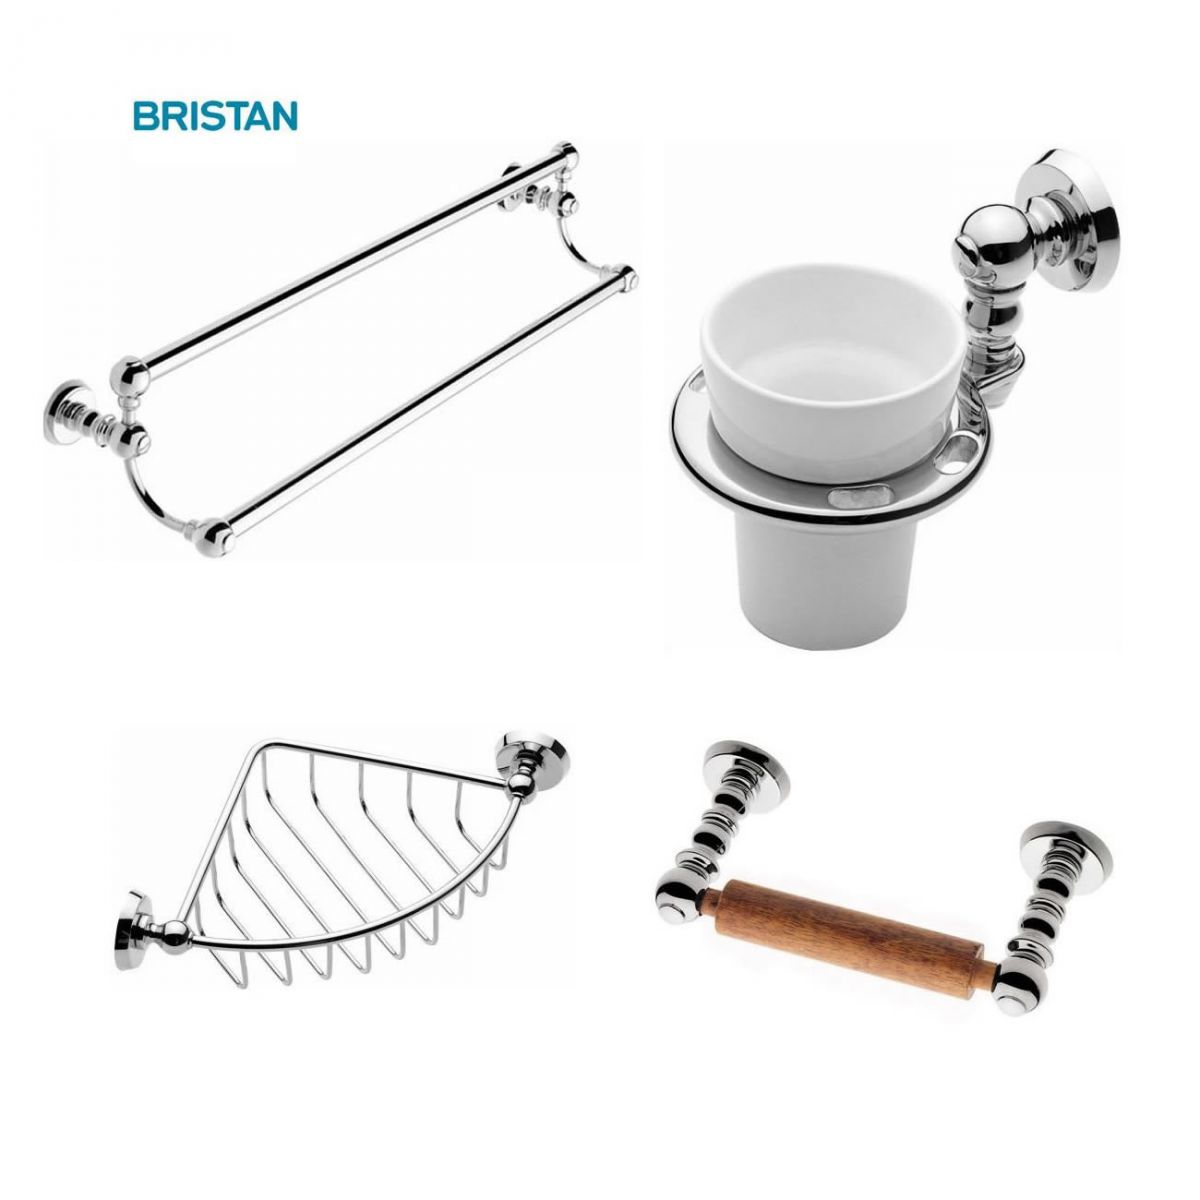 Bristan bathroom products accessories uk bathrooms Traditional bathroom accessories chrome